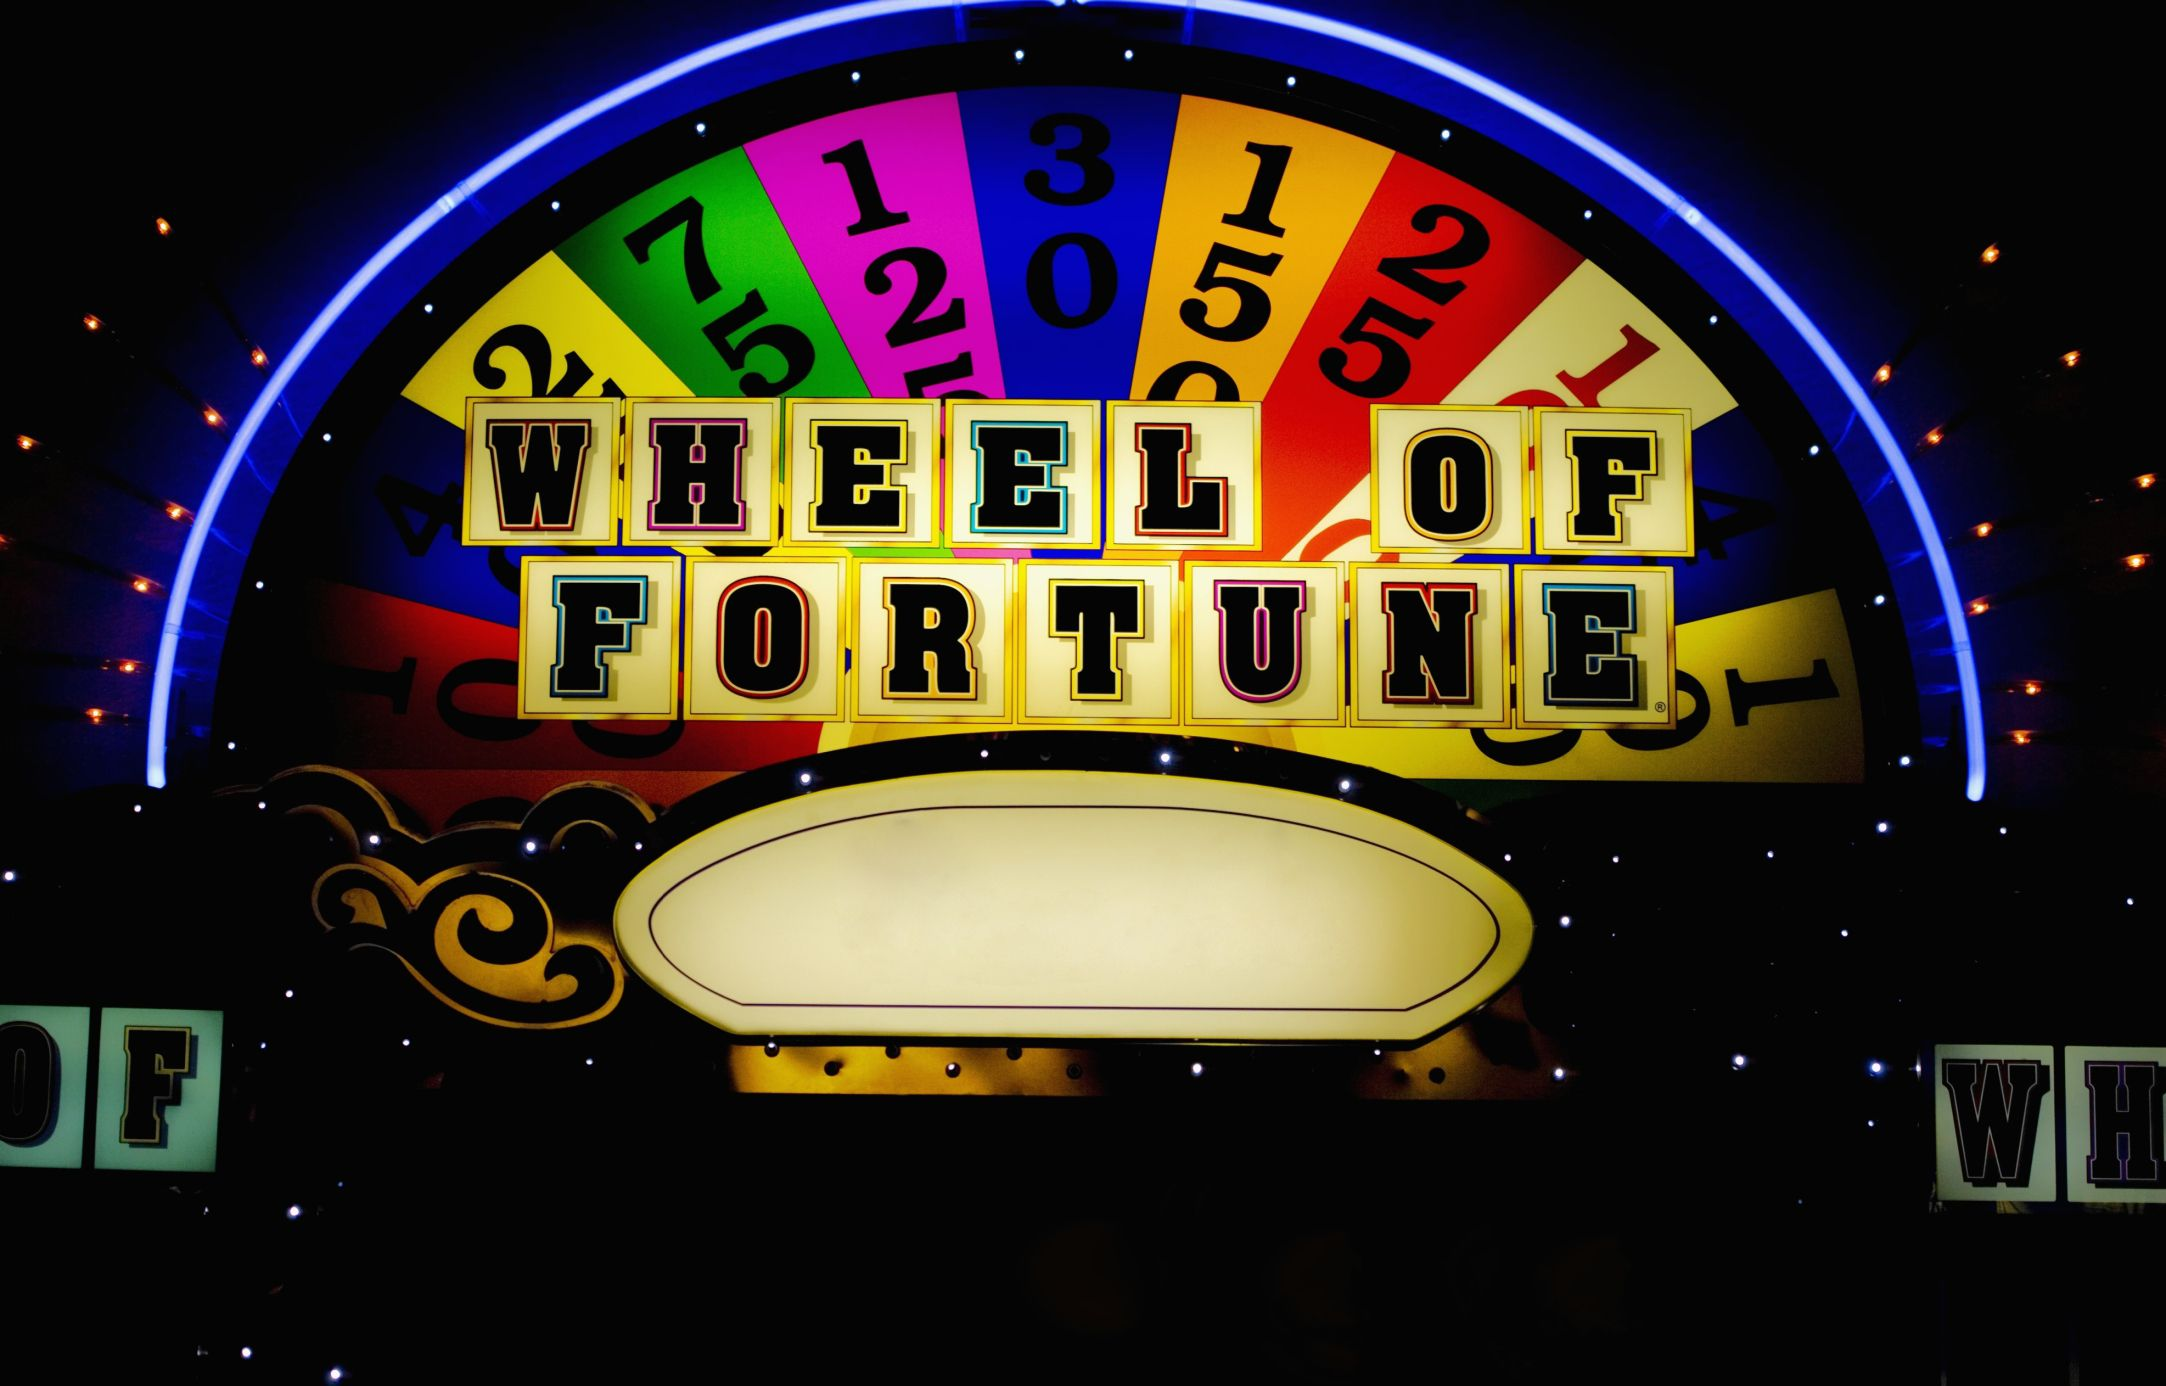 Same Letter Wheel Of Fortune.How To Get A Wheel Of Fortune Spin Id And Use It To Win Prizes